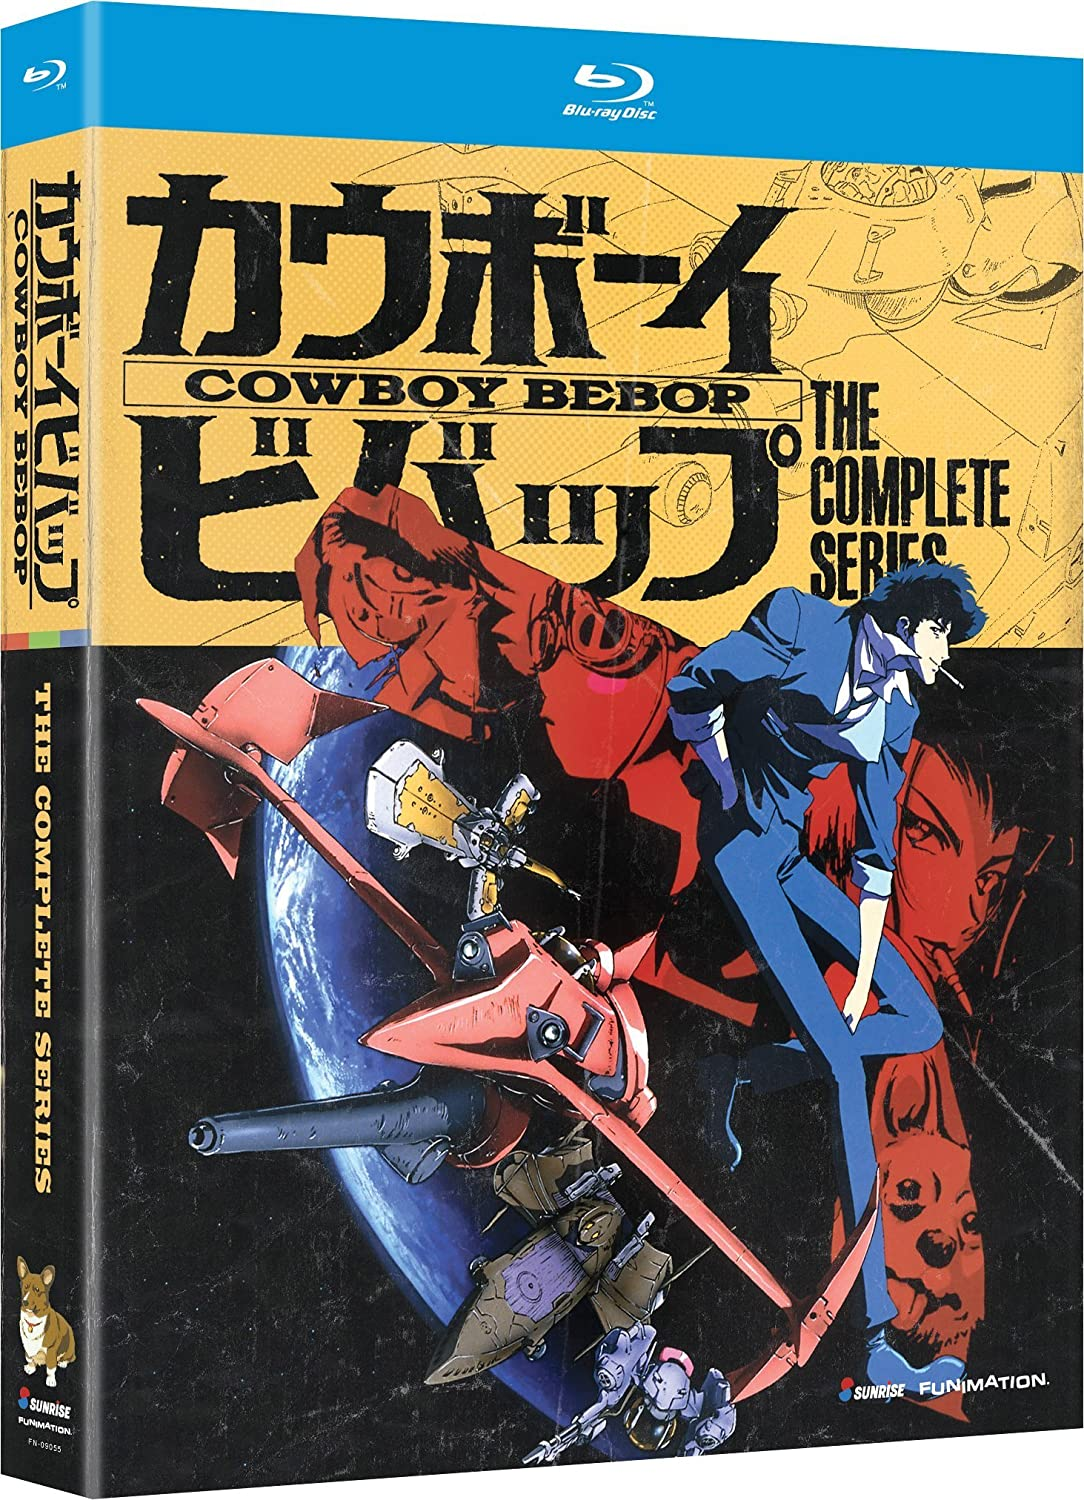 Cowboy Bebop: The Complete Series [Blu-ray] Group 1200 - Funimation 30165786 Anime / Japanimation Cartoons & Animation